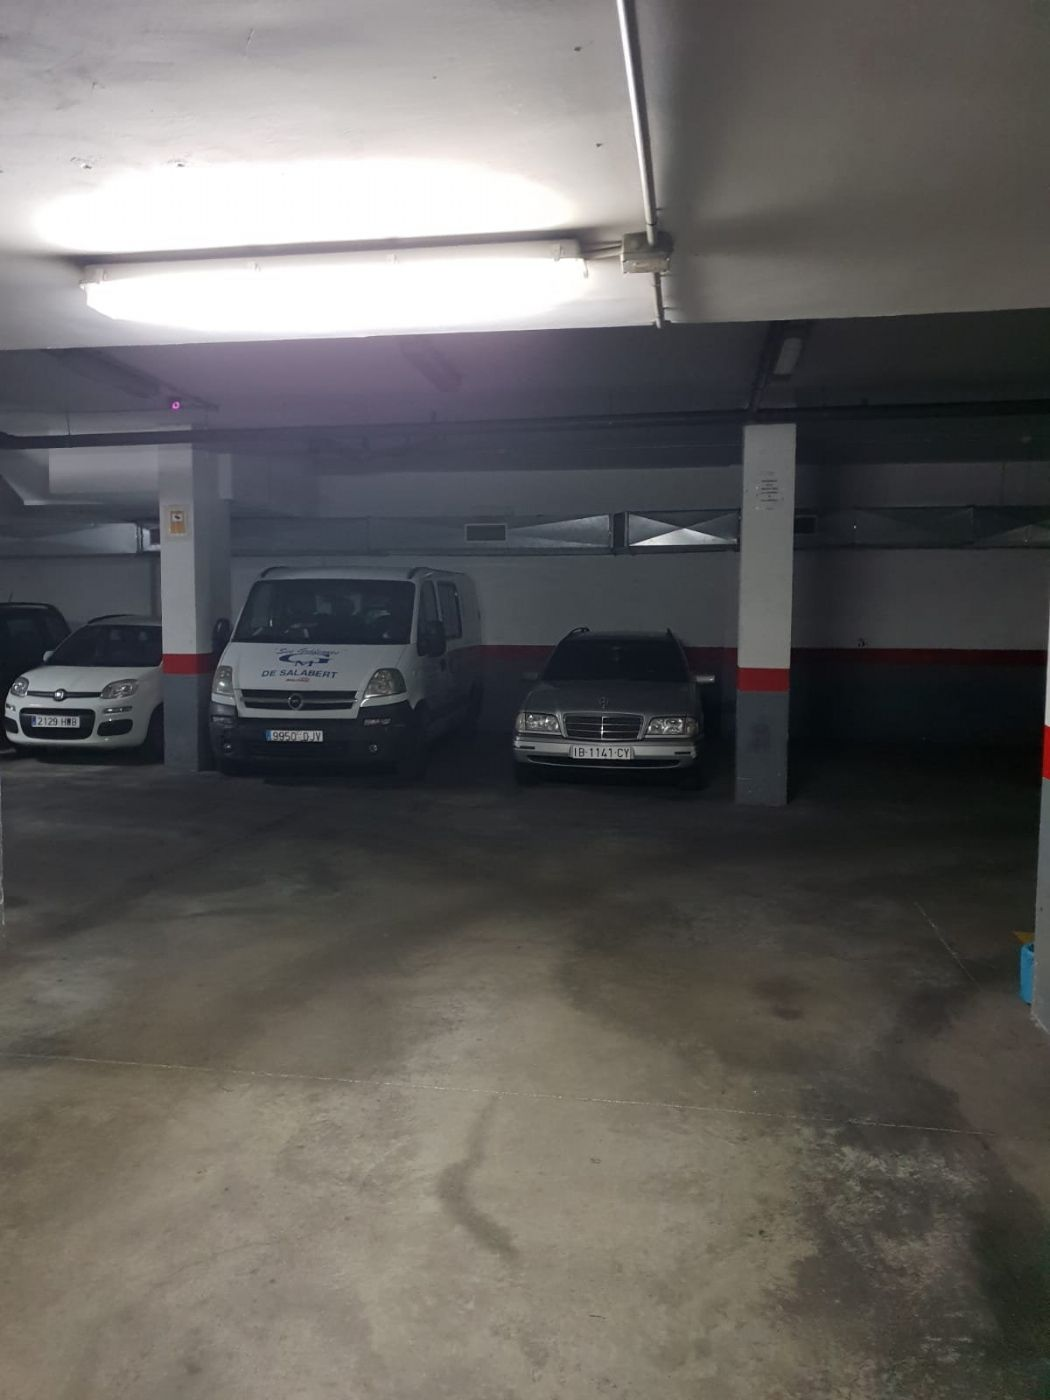 Rent Car parking in Carrer dega tous, 1. Con camara de vigilancia